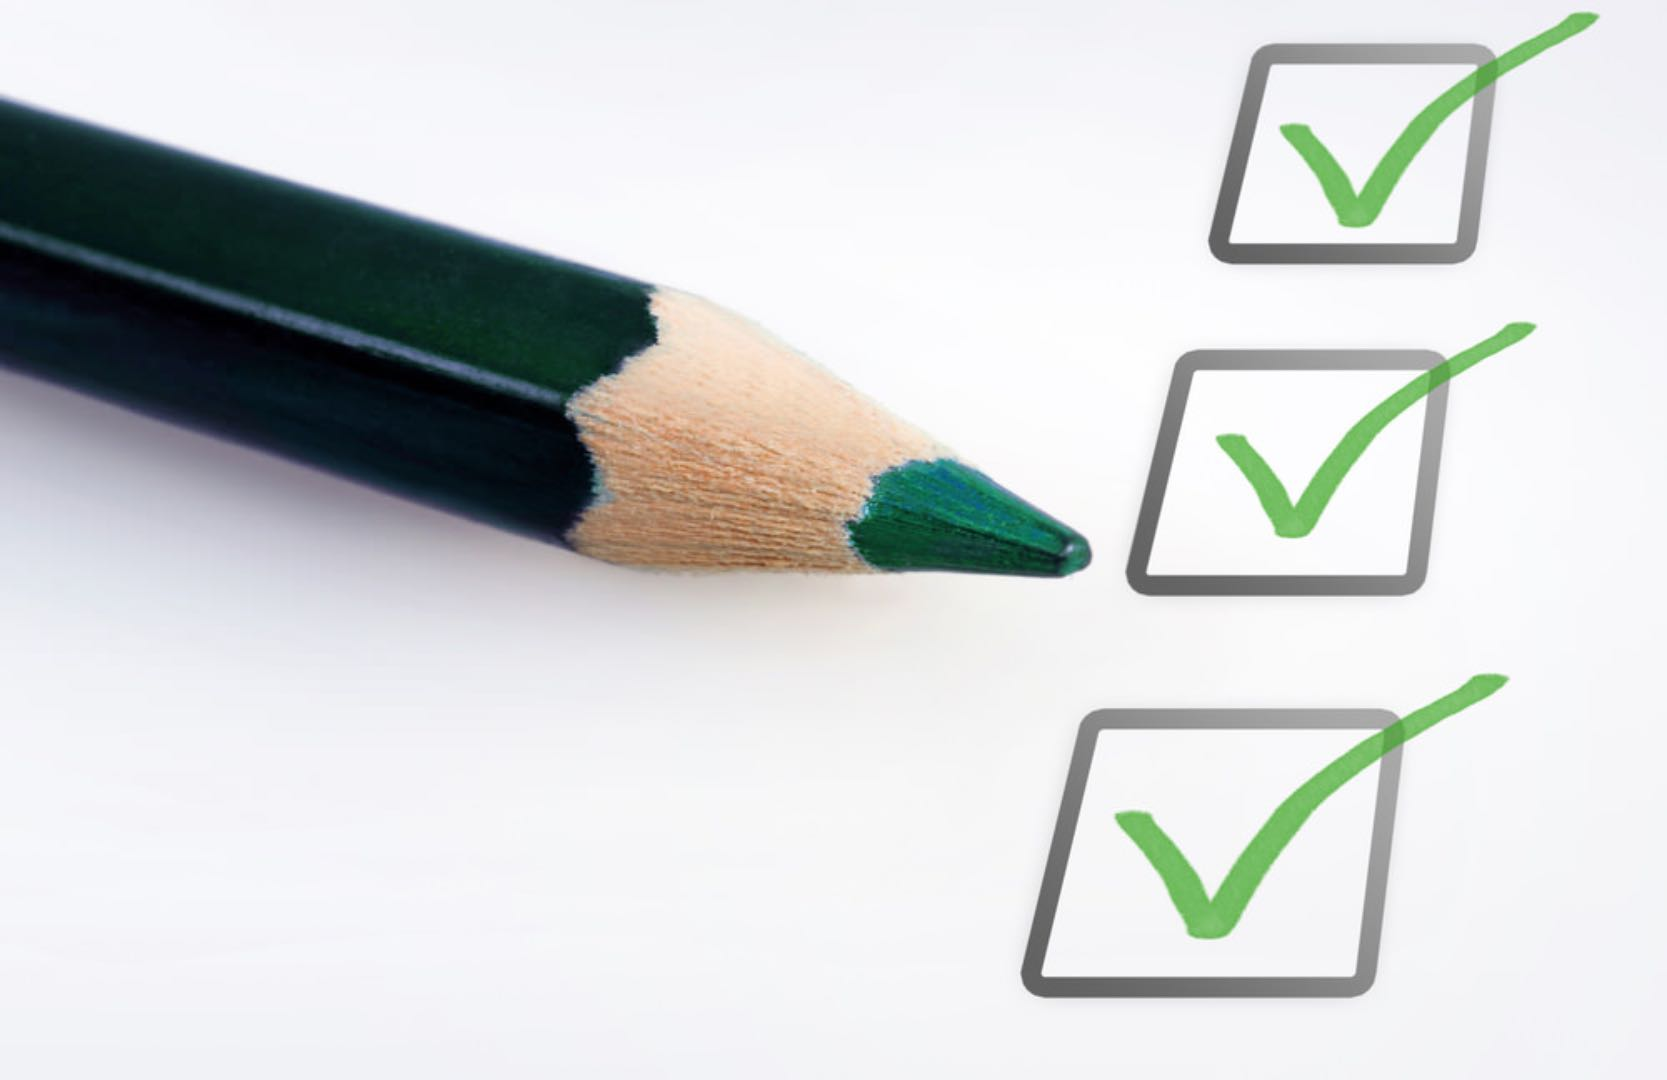 2021 seo content checklist for content writers